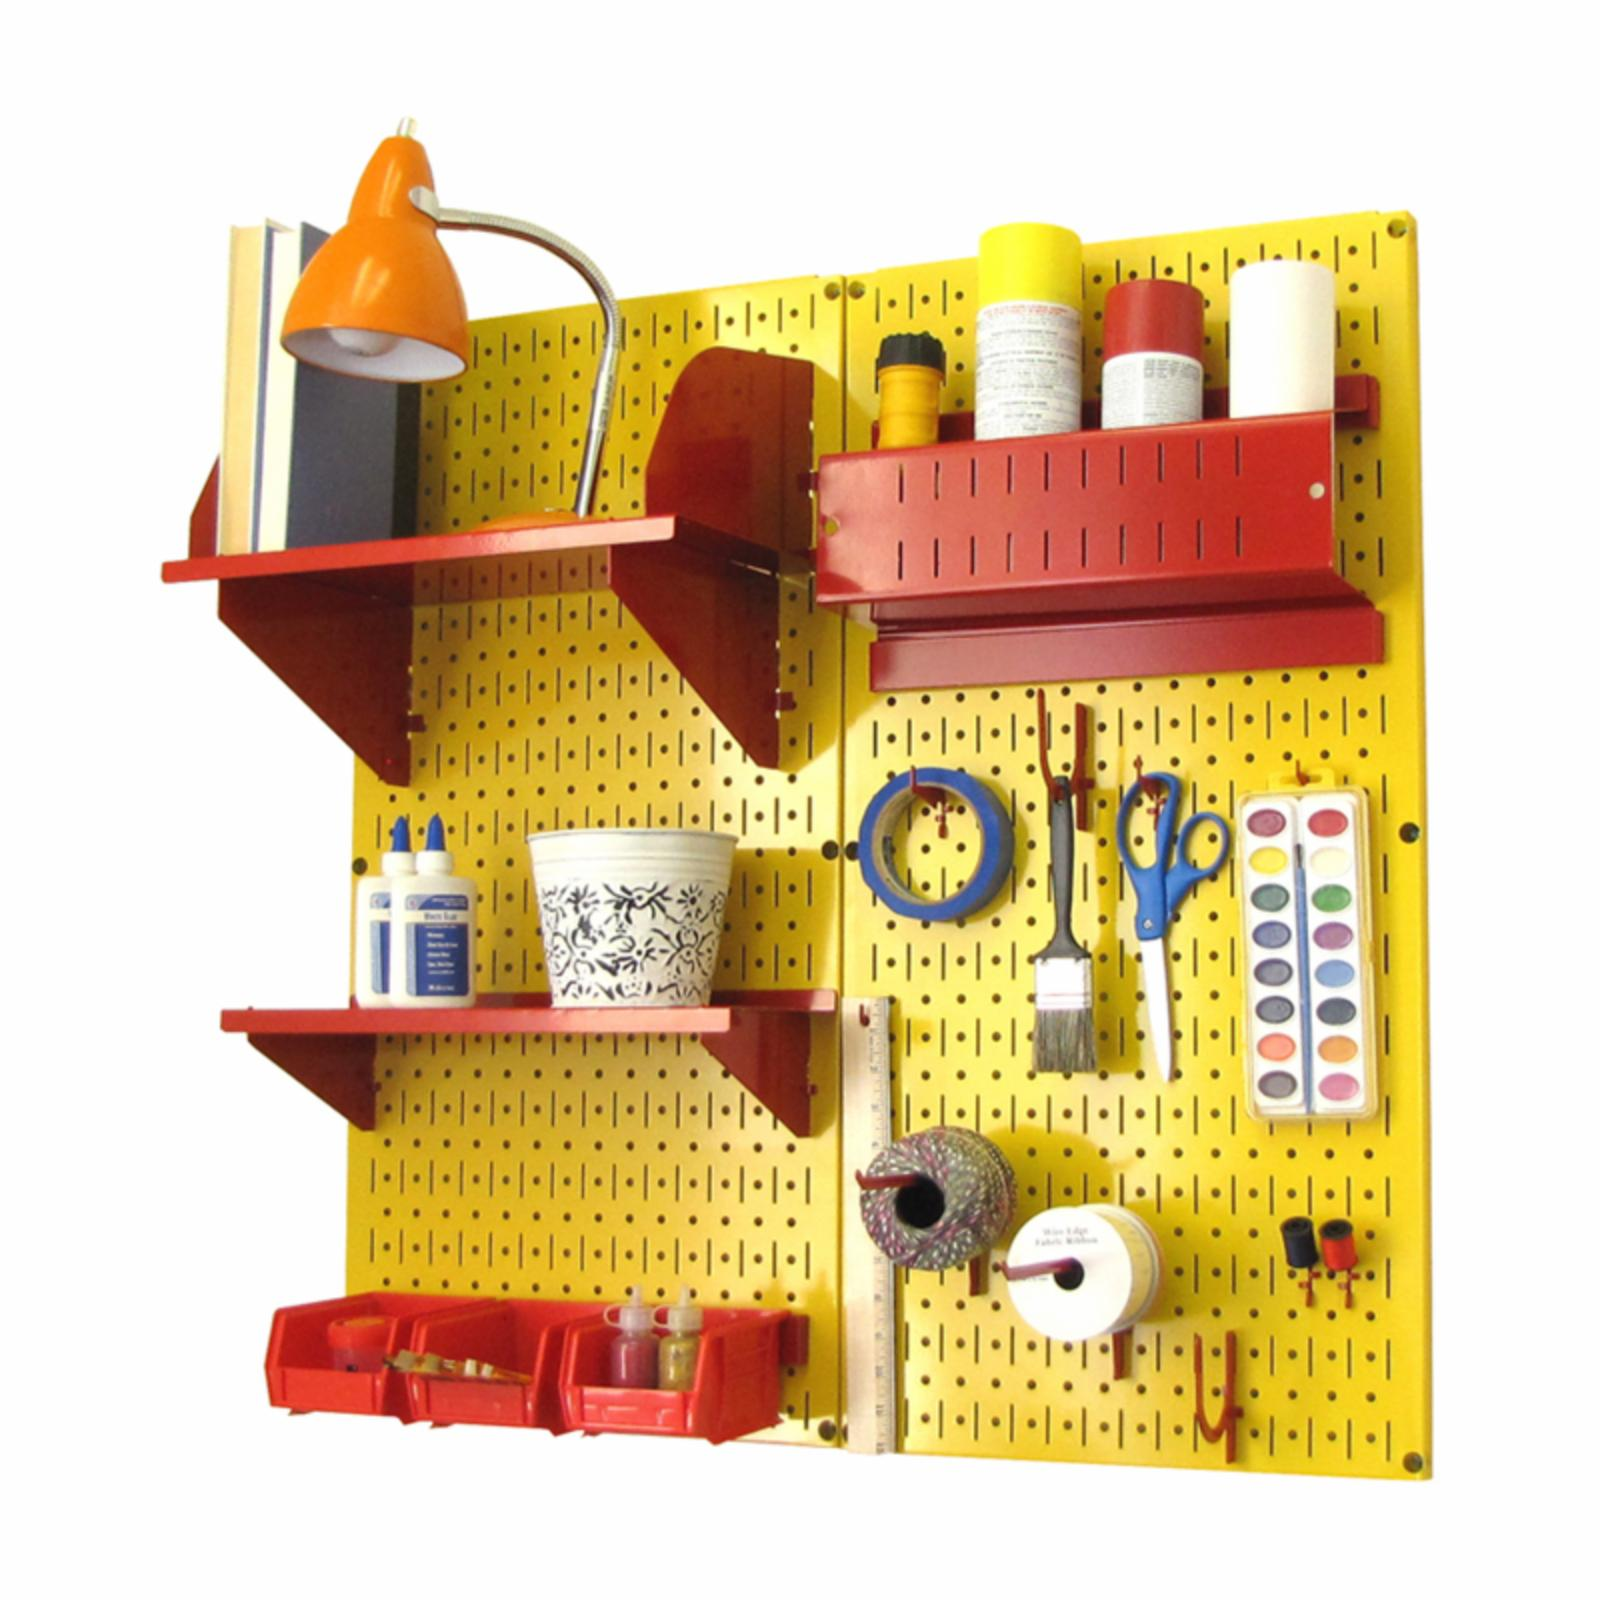 Wall Control Pegboard Hobby Craft Pegboard Organizer Storage Kit - Yellow Yellow with Red Accessories - 30-CC-200 YR